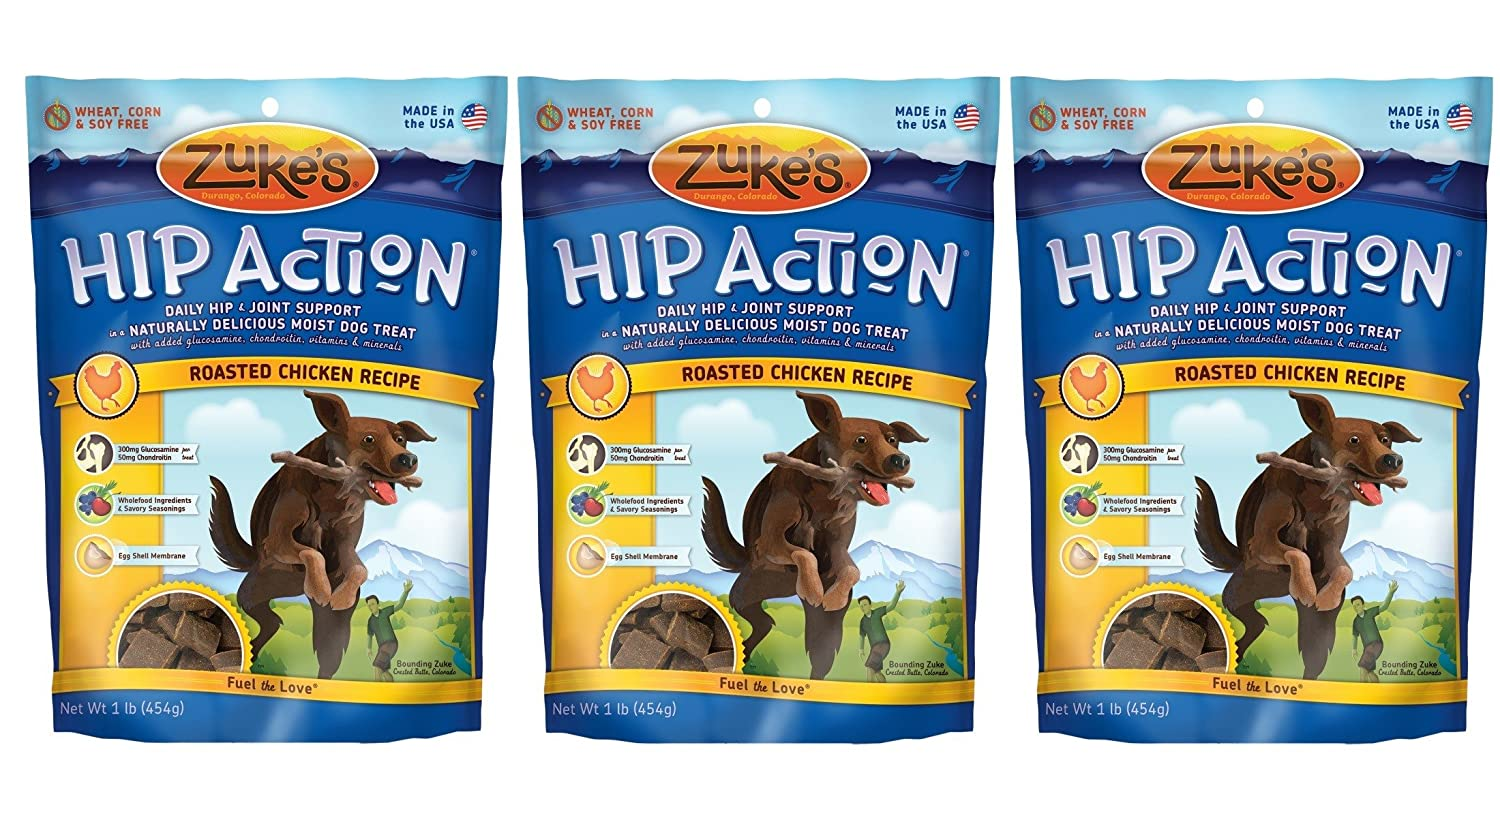 Zuke s Hip Action Natural Dog Treats, 1 lb, Pack of 3